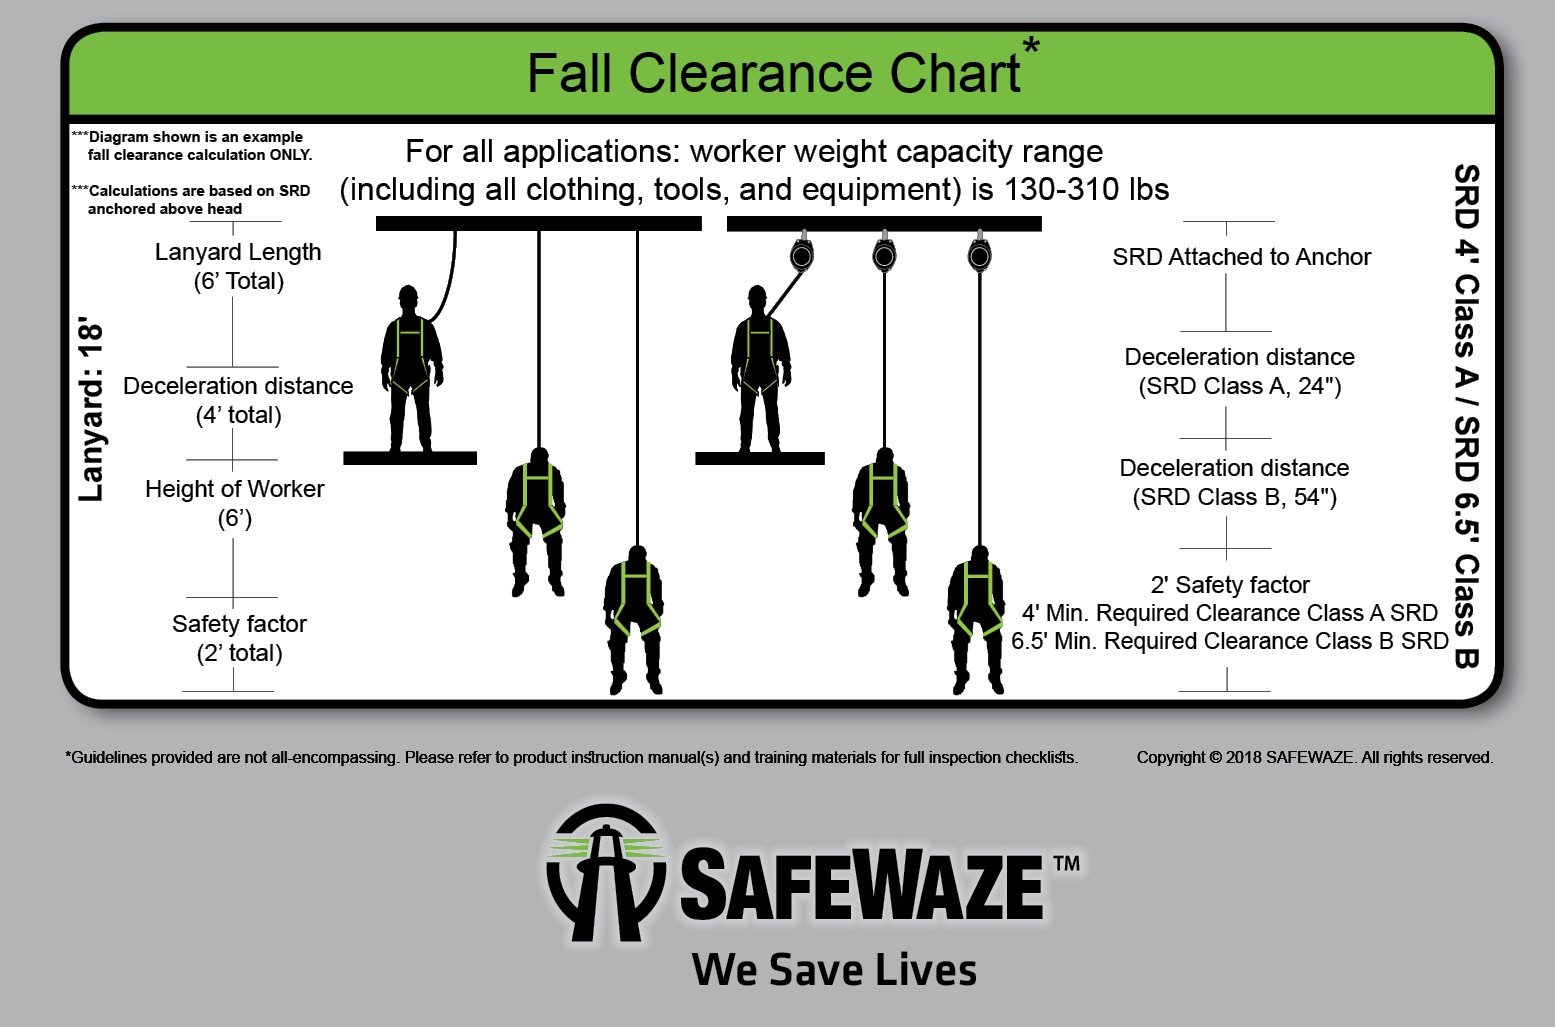 SafeWaze Class A 11 Foot Web Retractable Lifeline with Locking Snap Hook and Fall Indicator, Single Person Fall Protection Device, OSHA/ANSI Compliant (FS-FSP1411-W) by SafeWaze (Image #3)